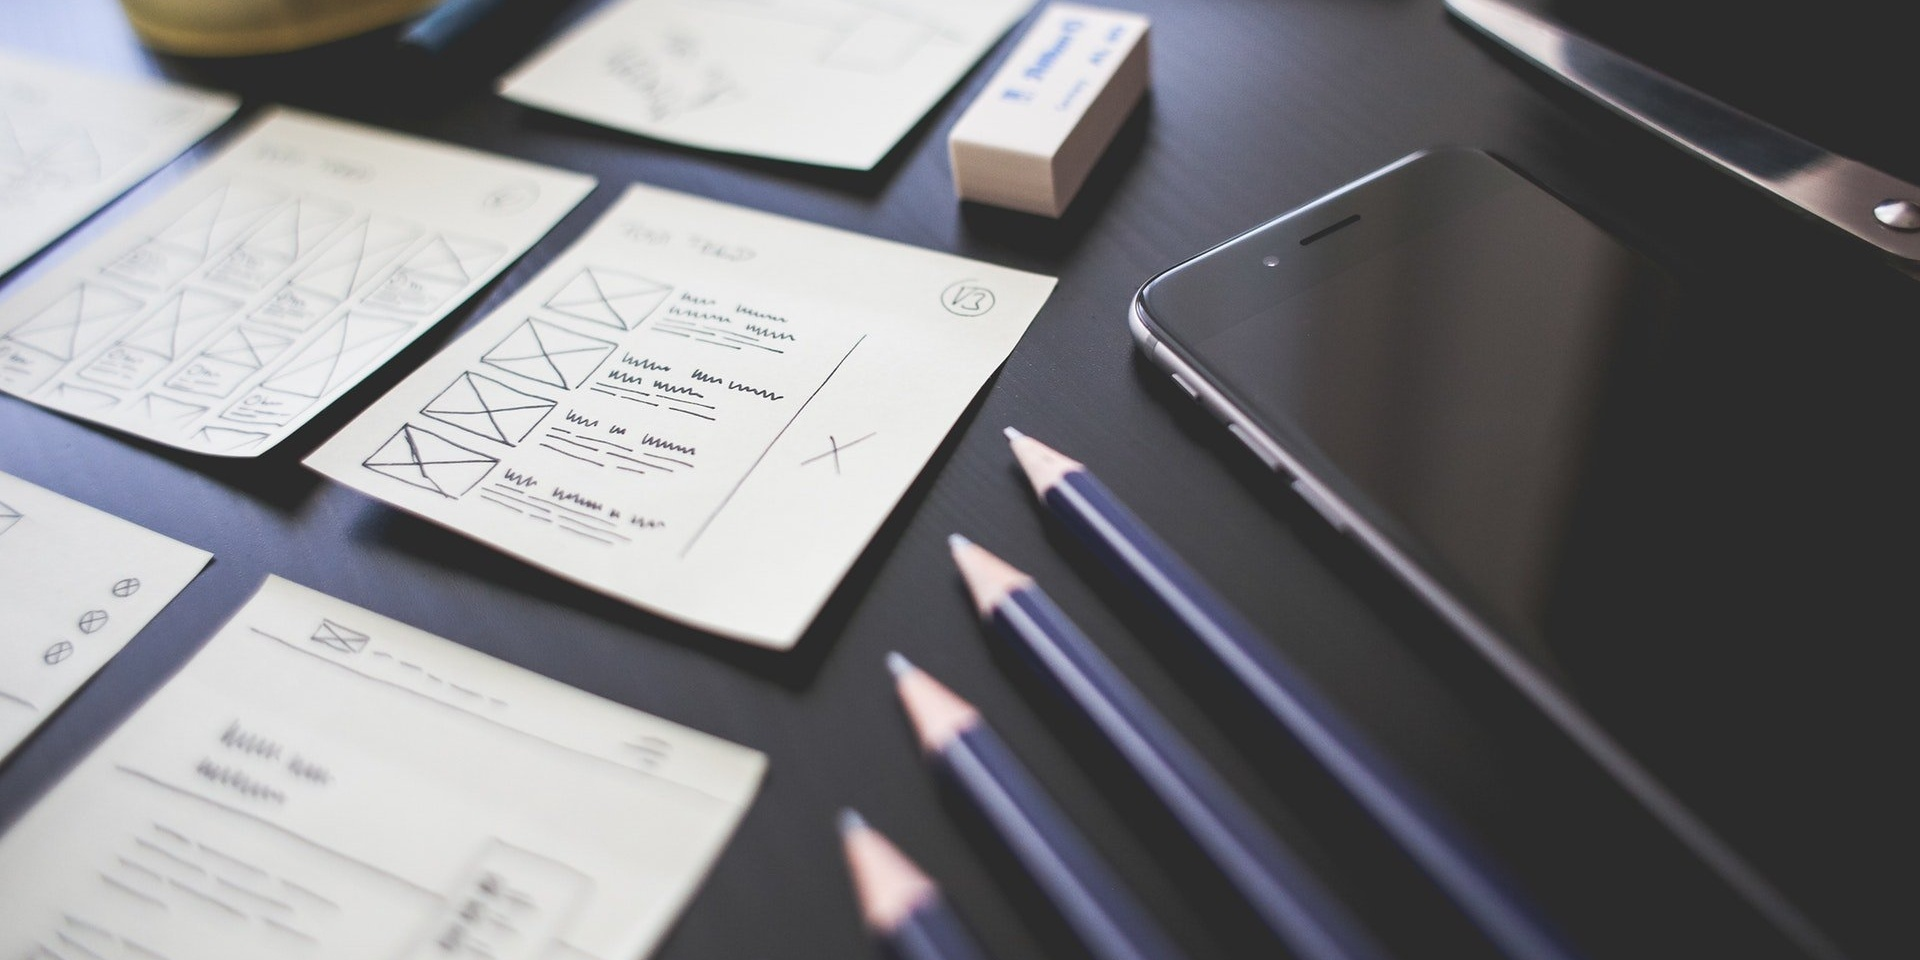 web designs and pencils neatly organized on desk-022061-edited